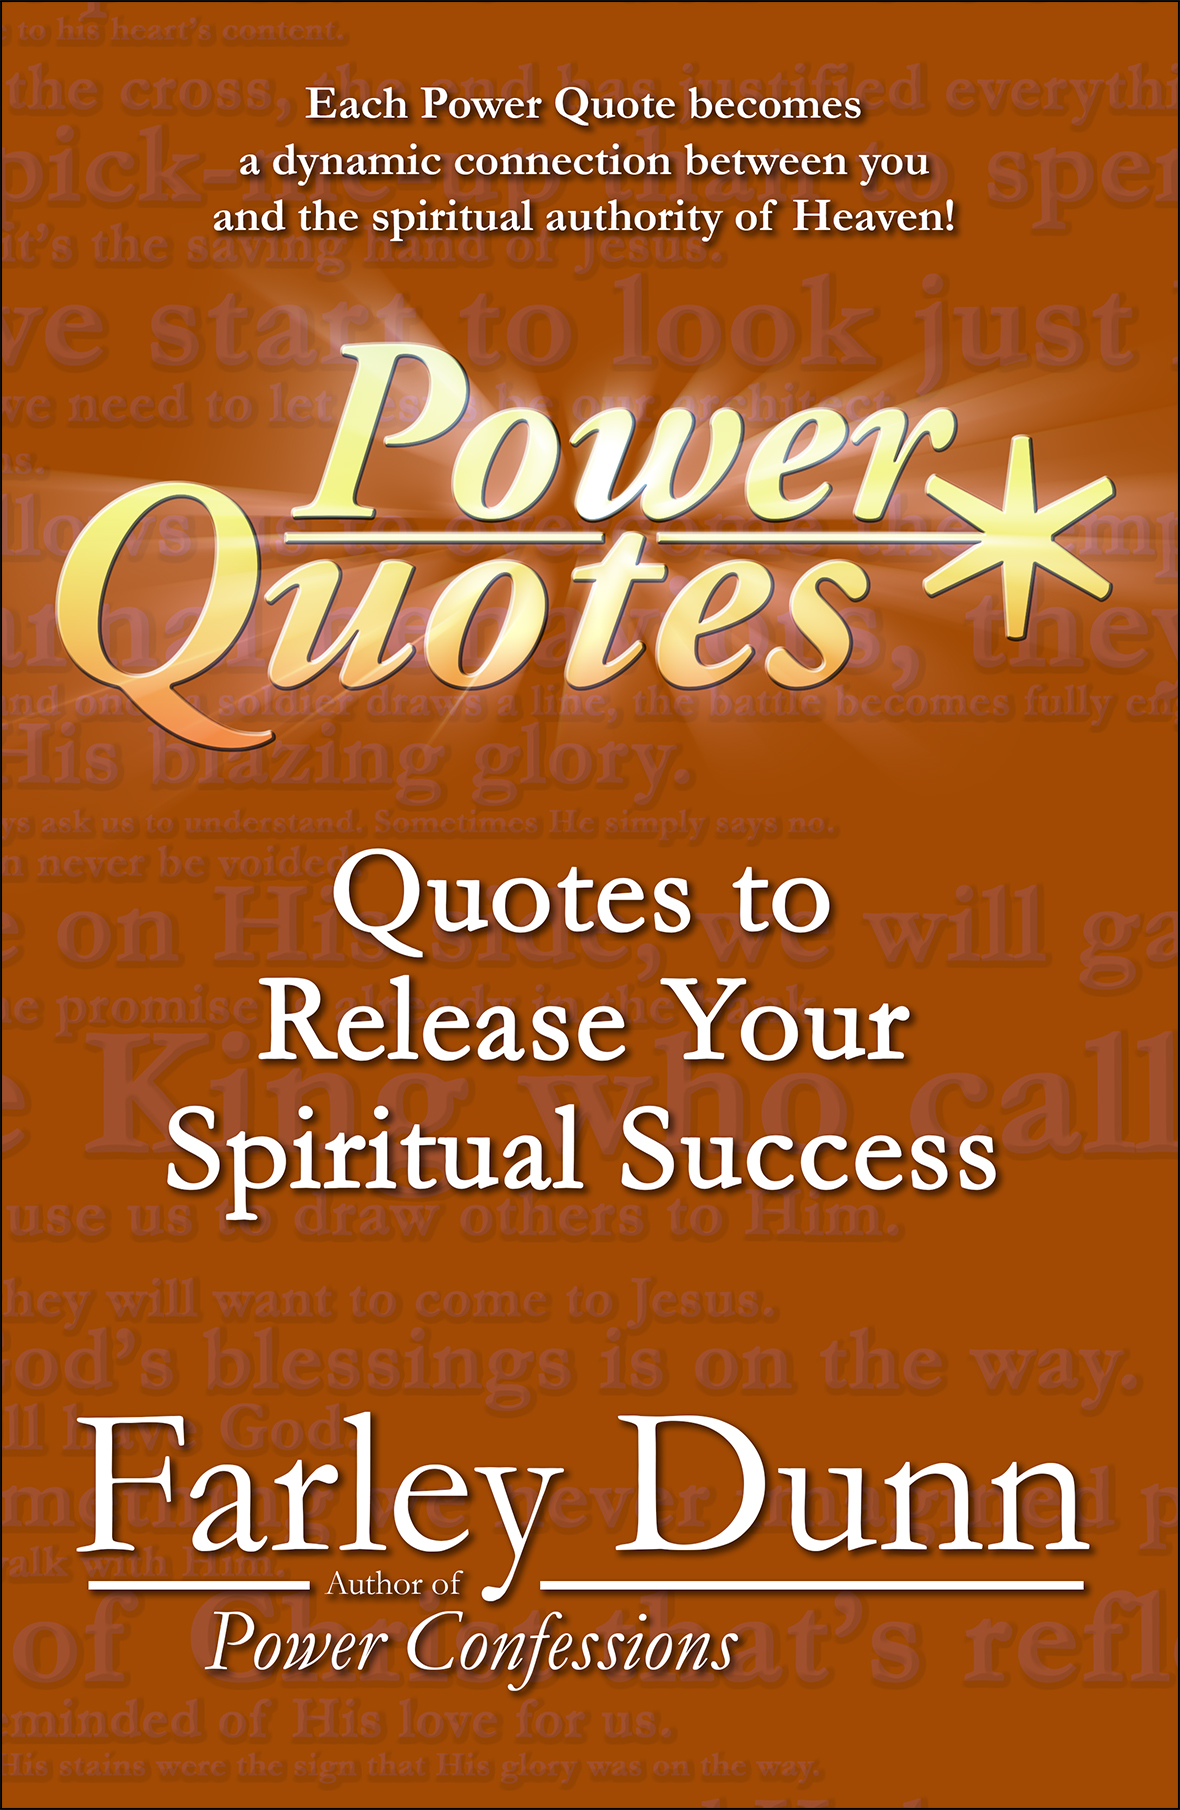 Power Quotes V1 Full Cover Book 2 reduced for Web Insertion